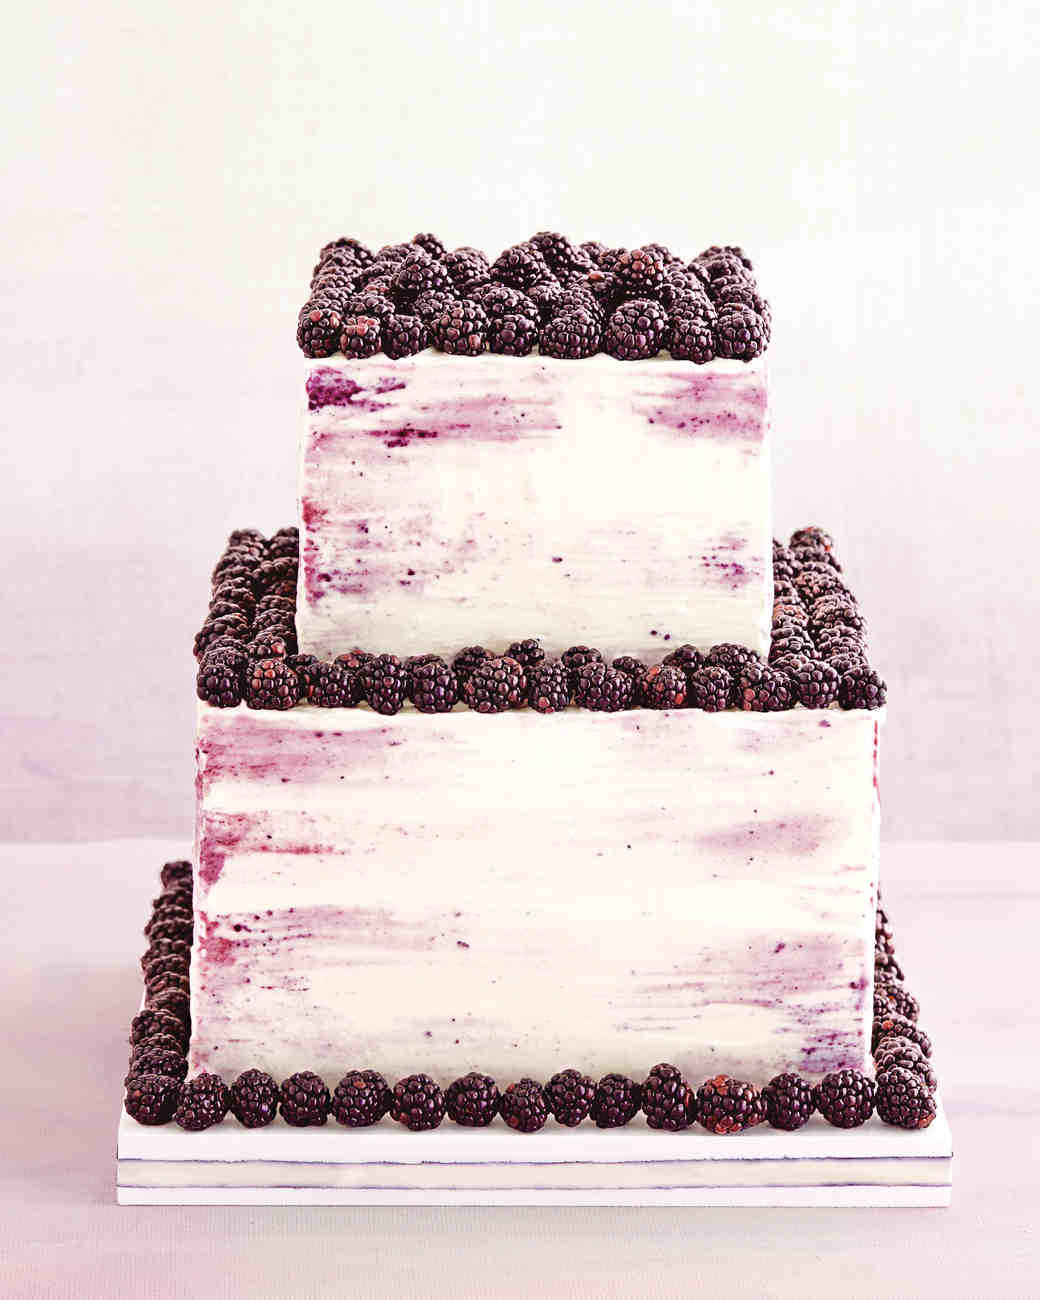 wedding-cake-purplish-berry-cream-206-d111828.jpg